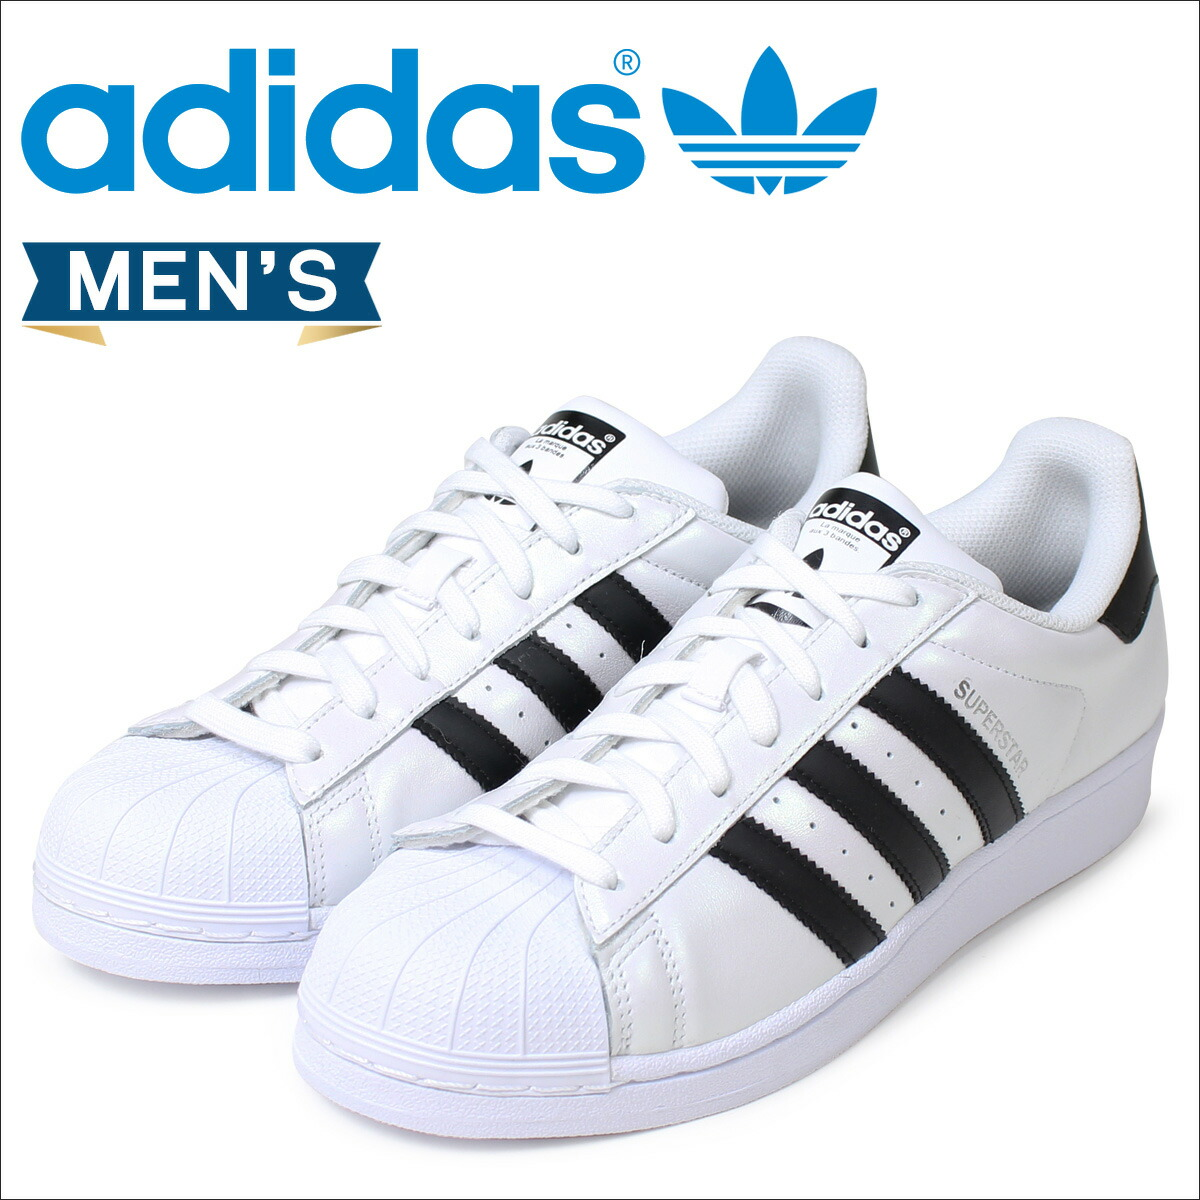 kxacp Sugar Online Shop | Rakuten Global Market: adidas Originals adidas